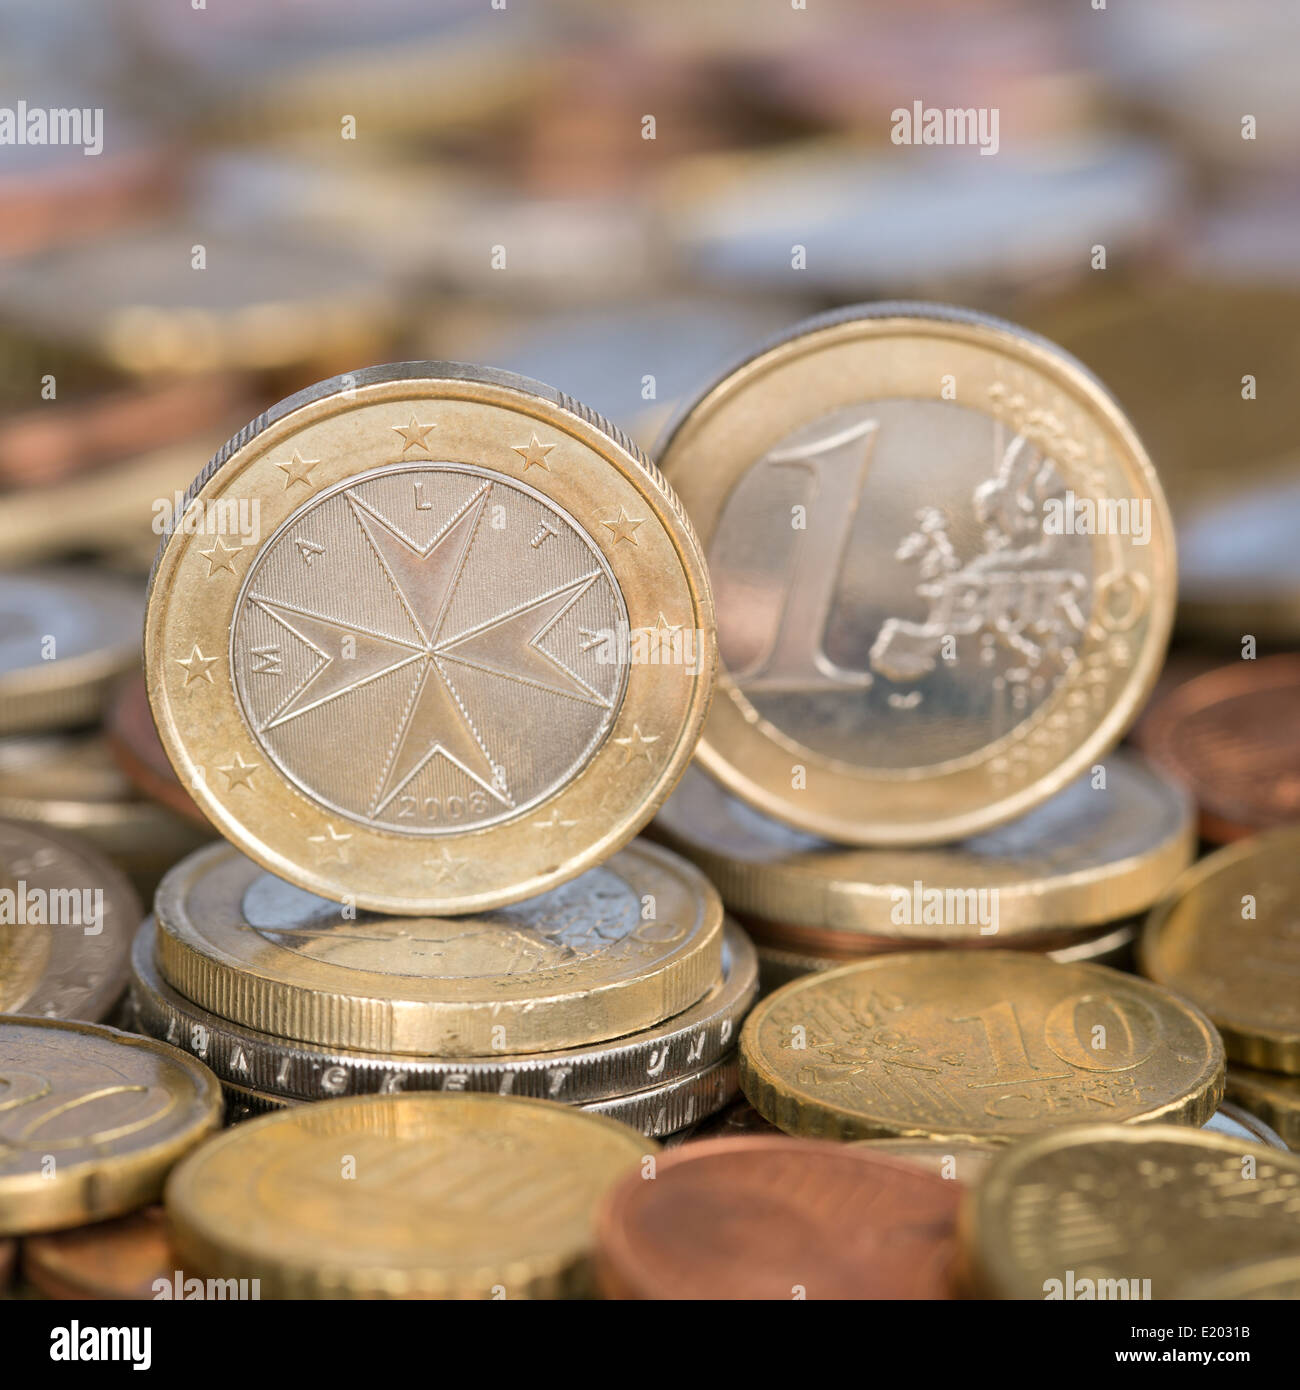 A one Euro coin from the European Union currency member country Malta - Stock Image